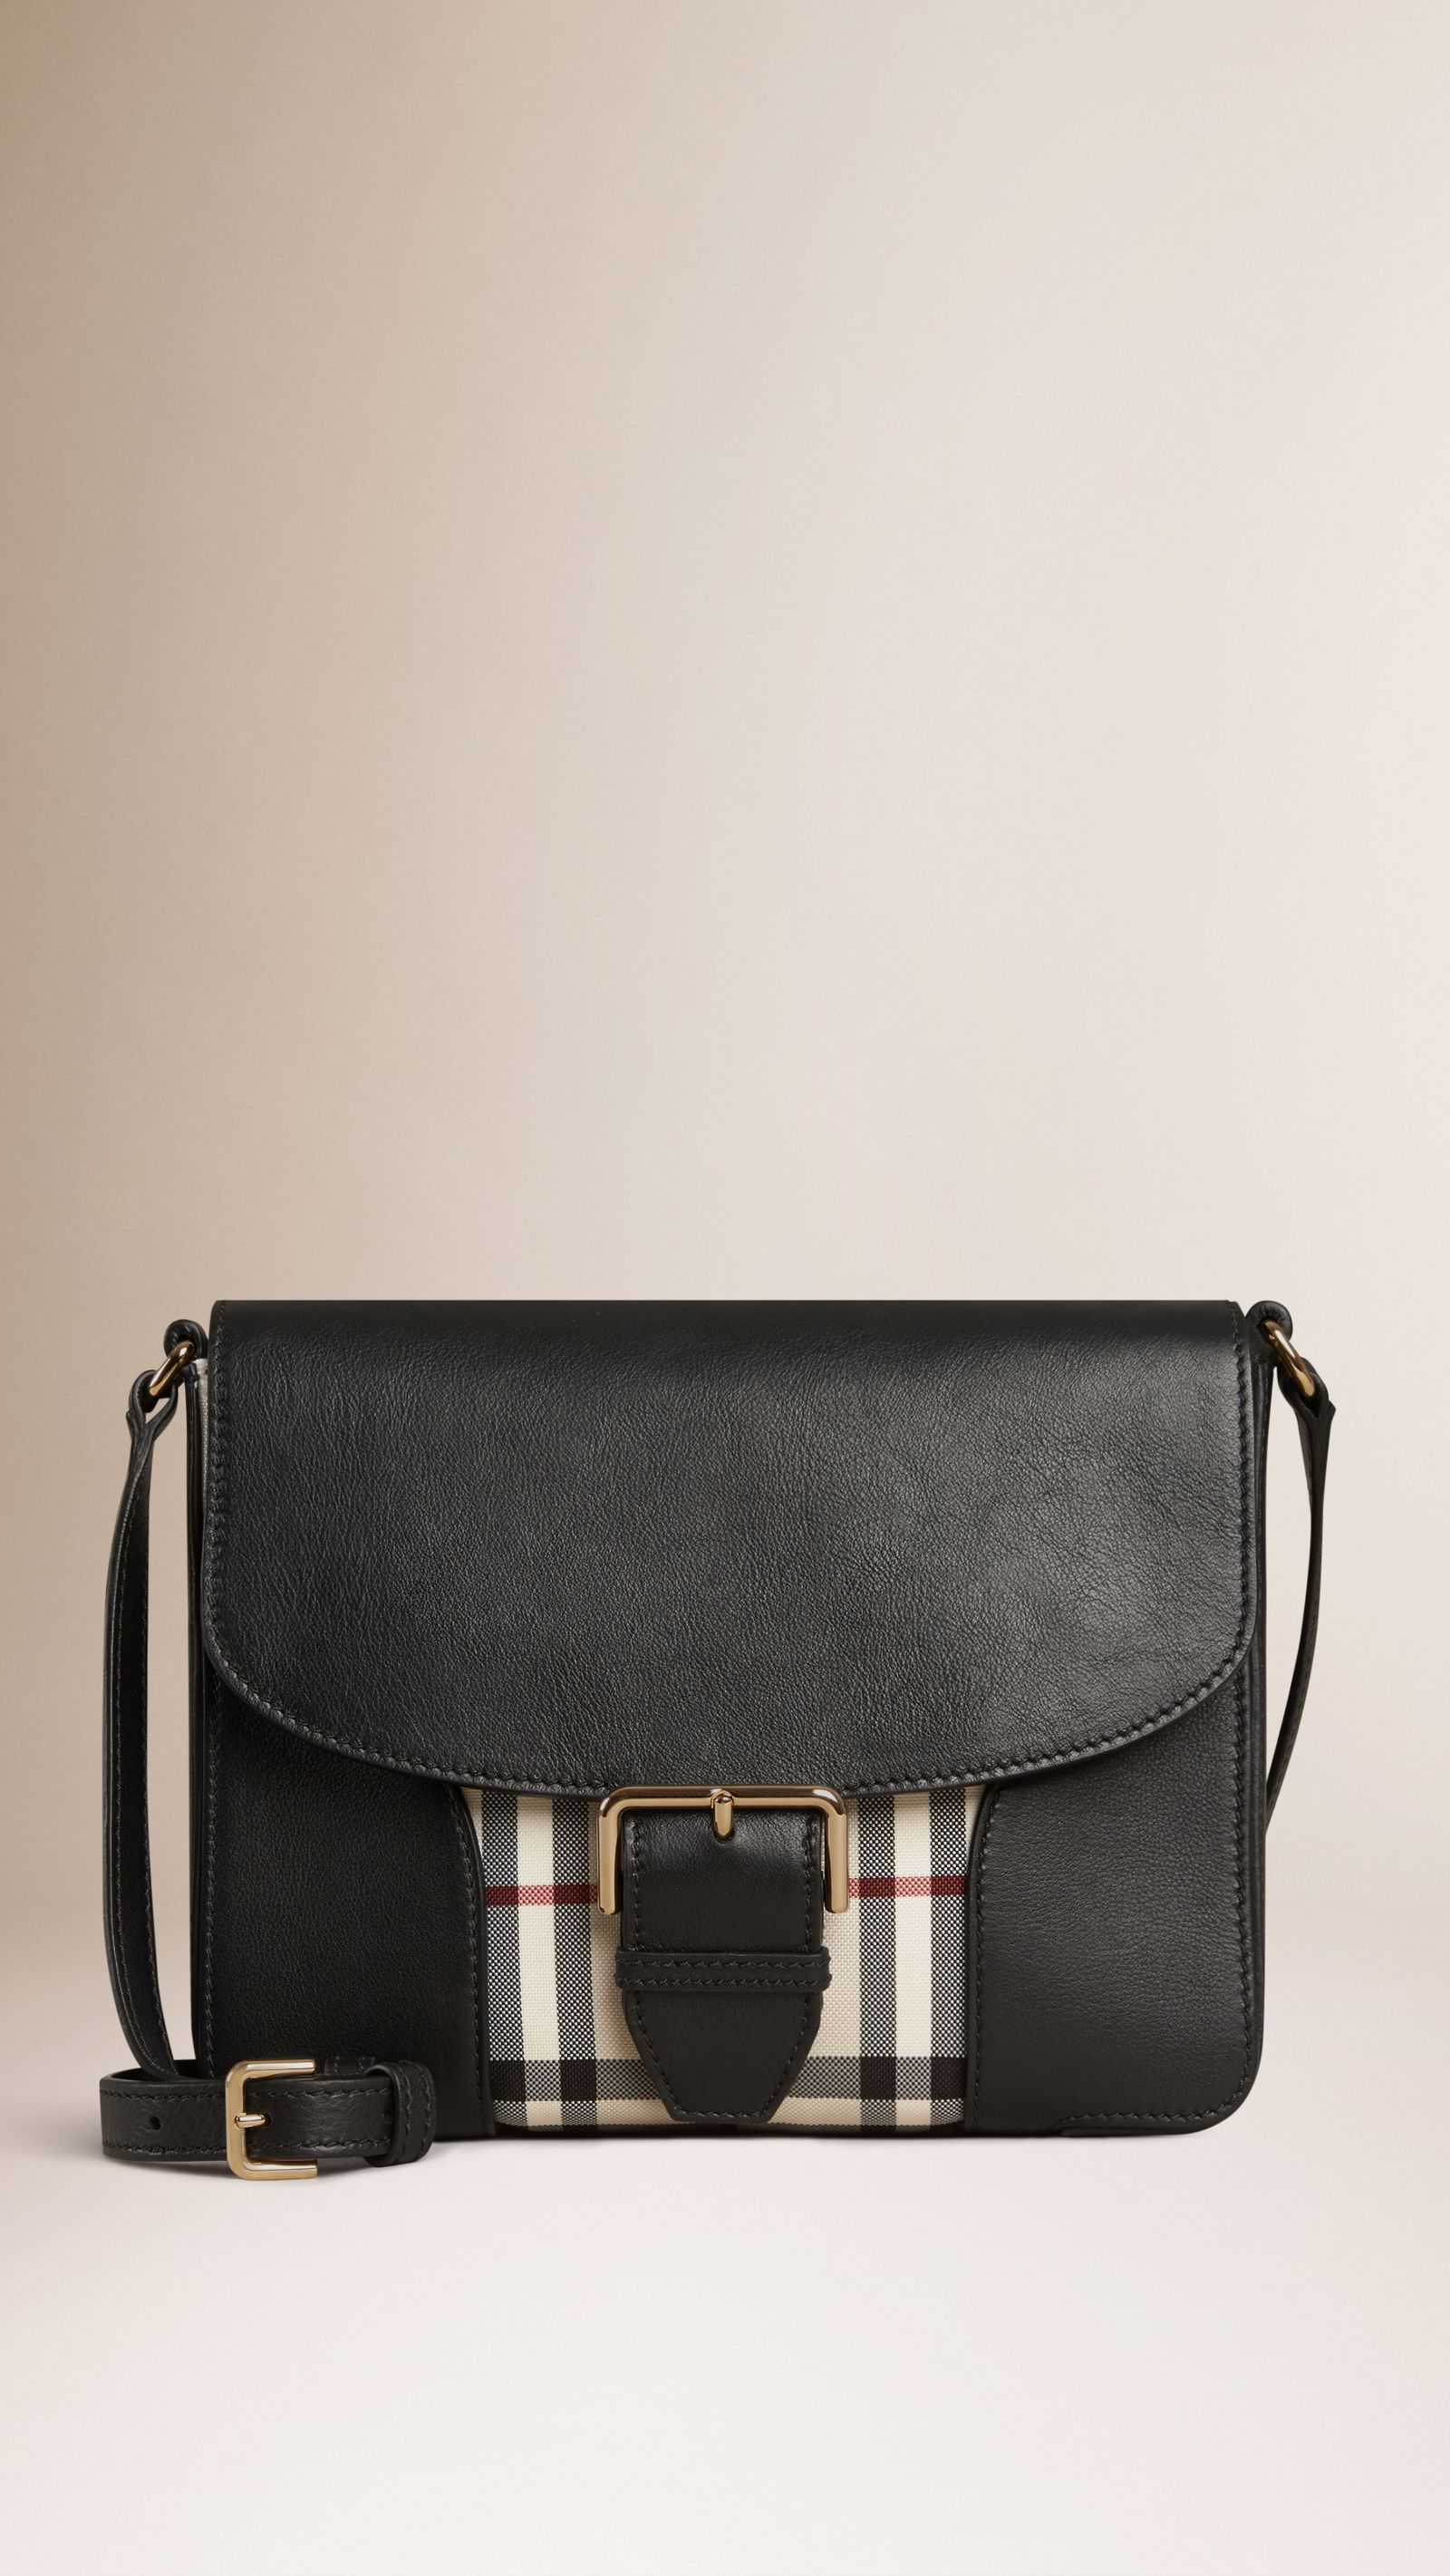 74b0feb58b2e Small Horseferry Check and Leather Crossbody Bag Stone black ...